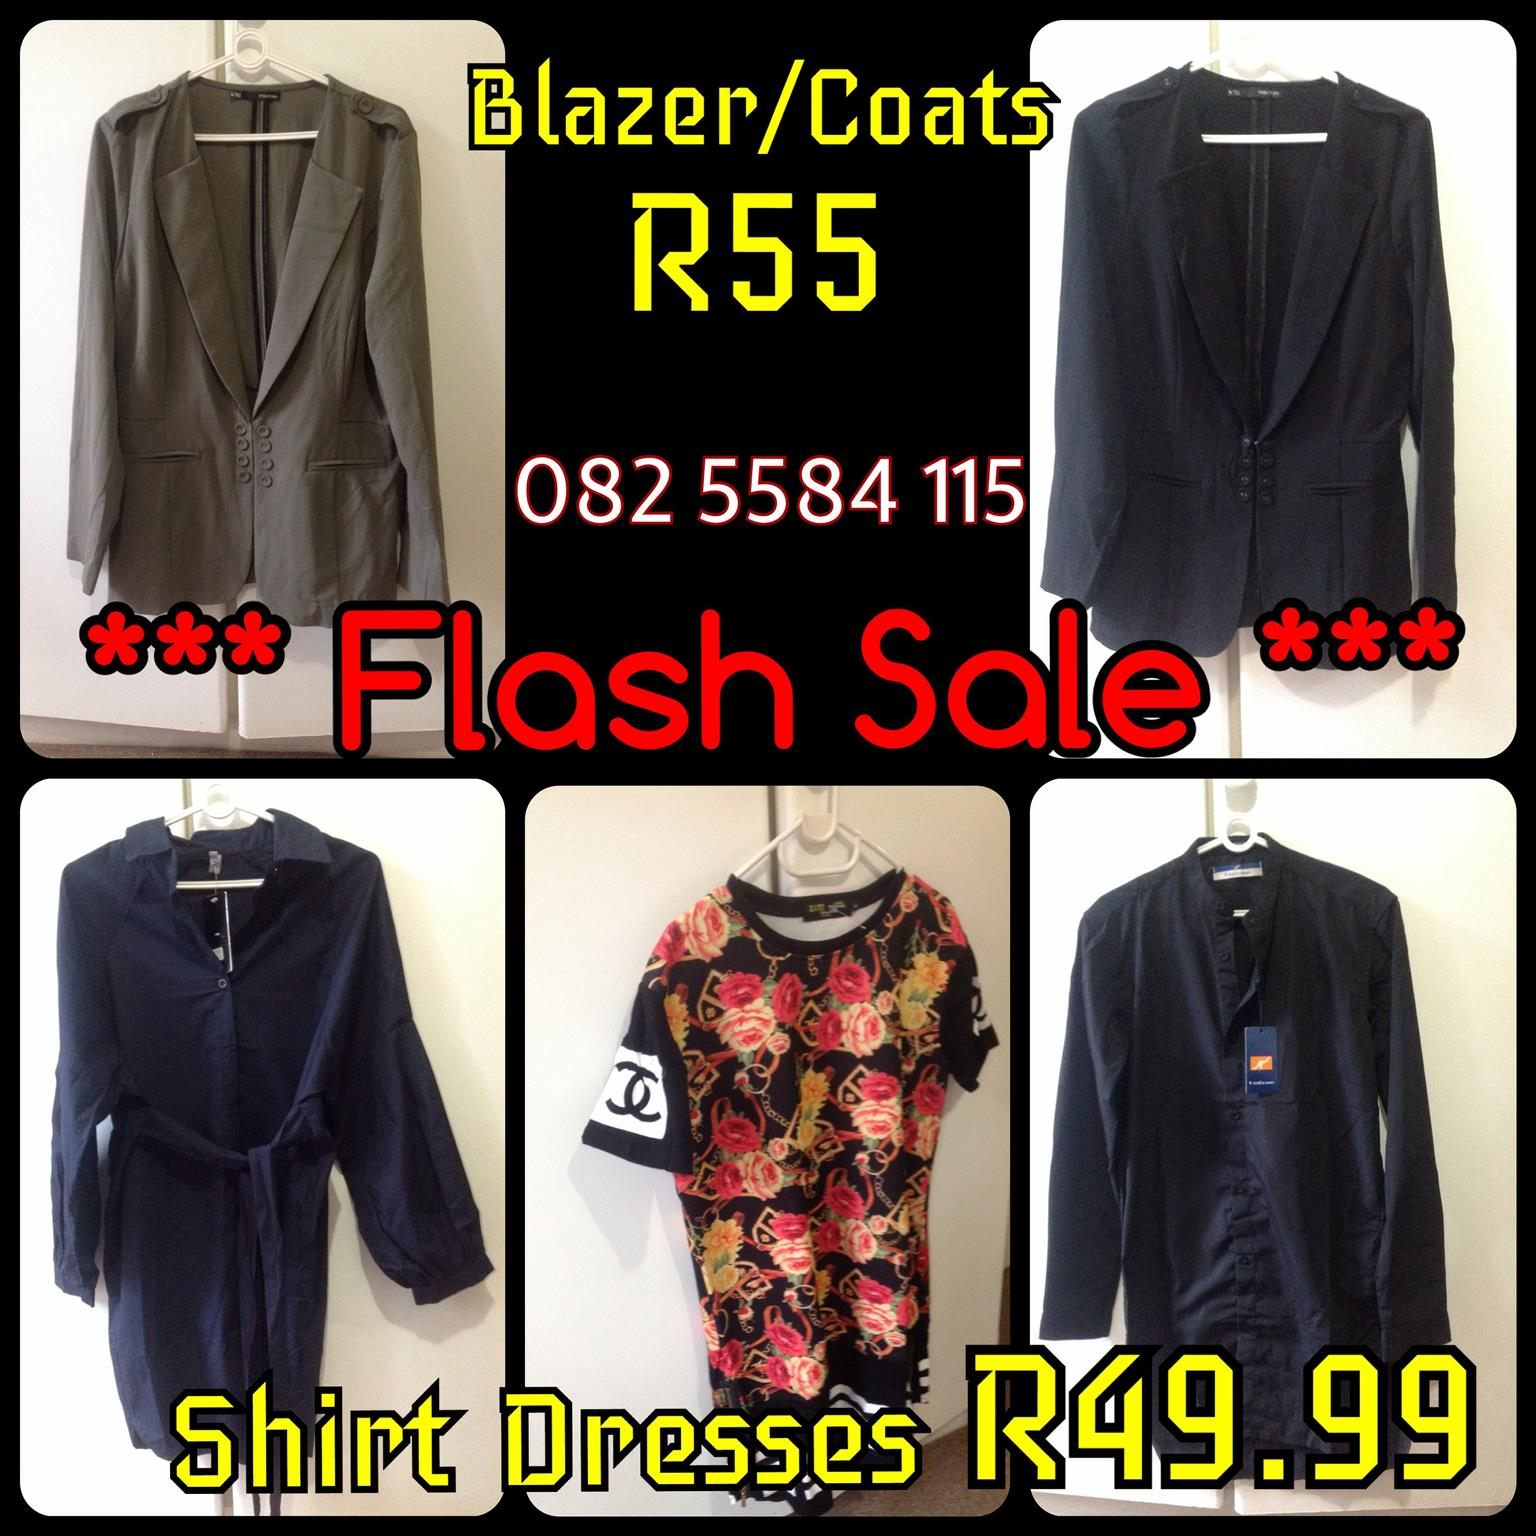 -Flash SALE on NEW Ladies Tops, Shirts, Blazers